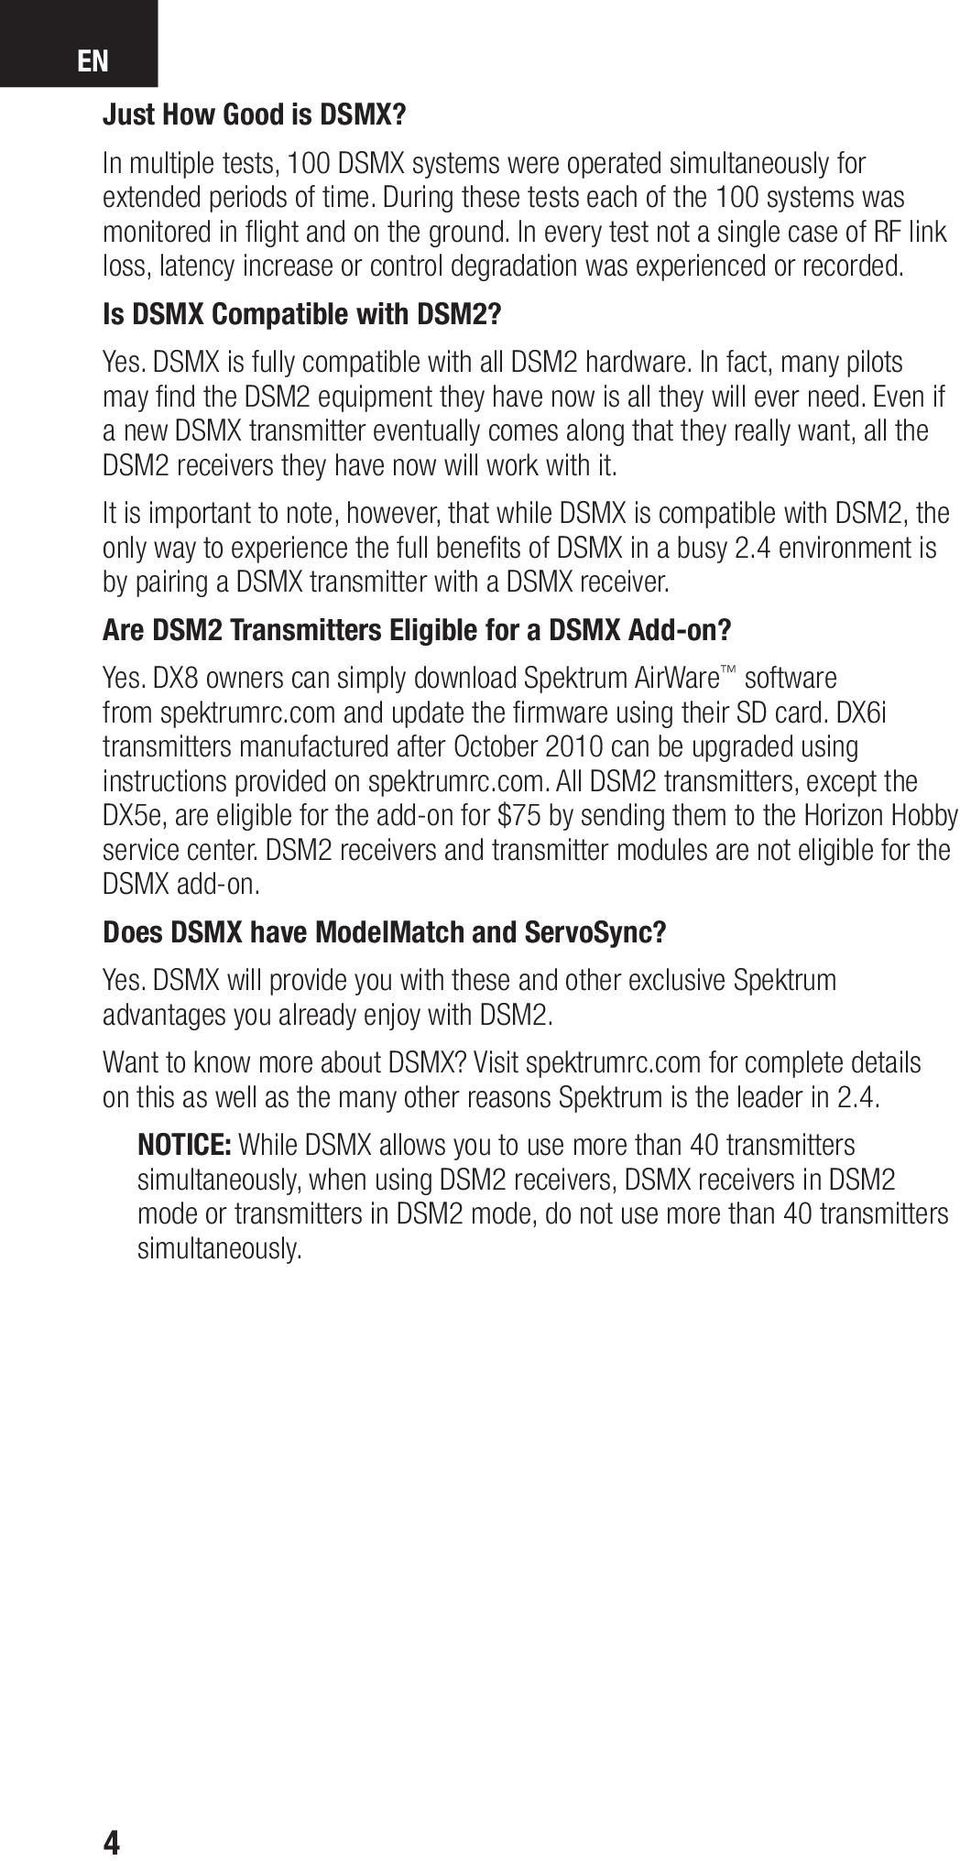 In every test not a single case of RF link loss, latency increase or control degradation was experienced or recorded. Is DSMX Compatible with DSM2? Yes.